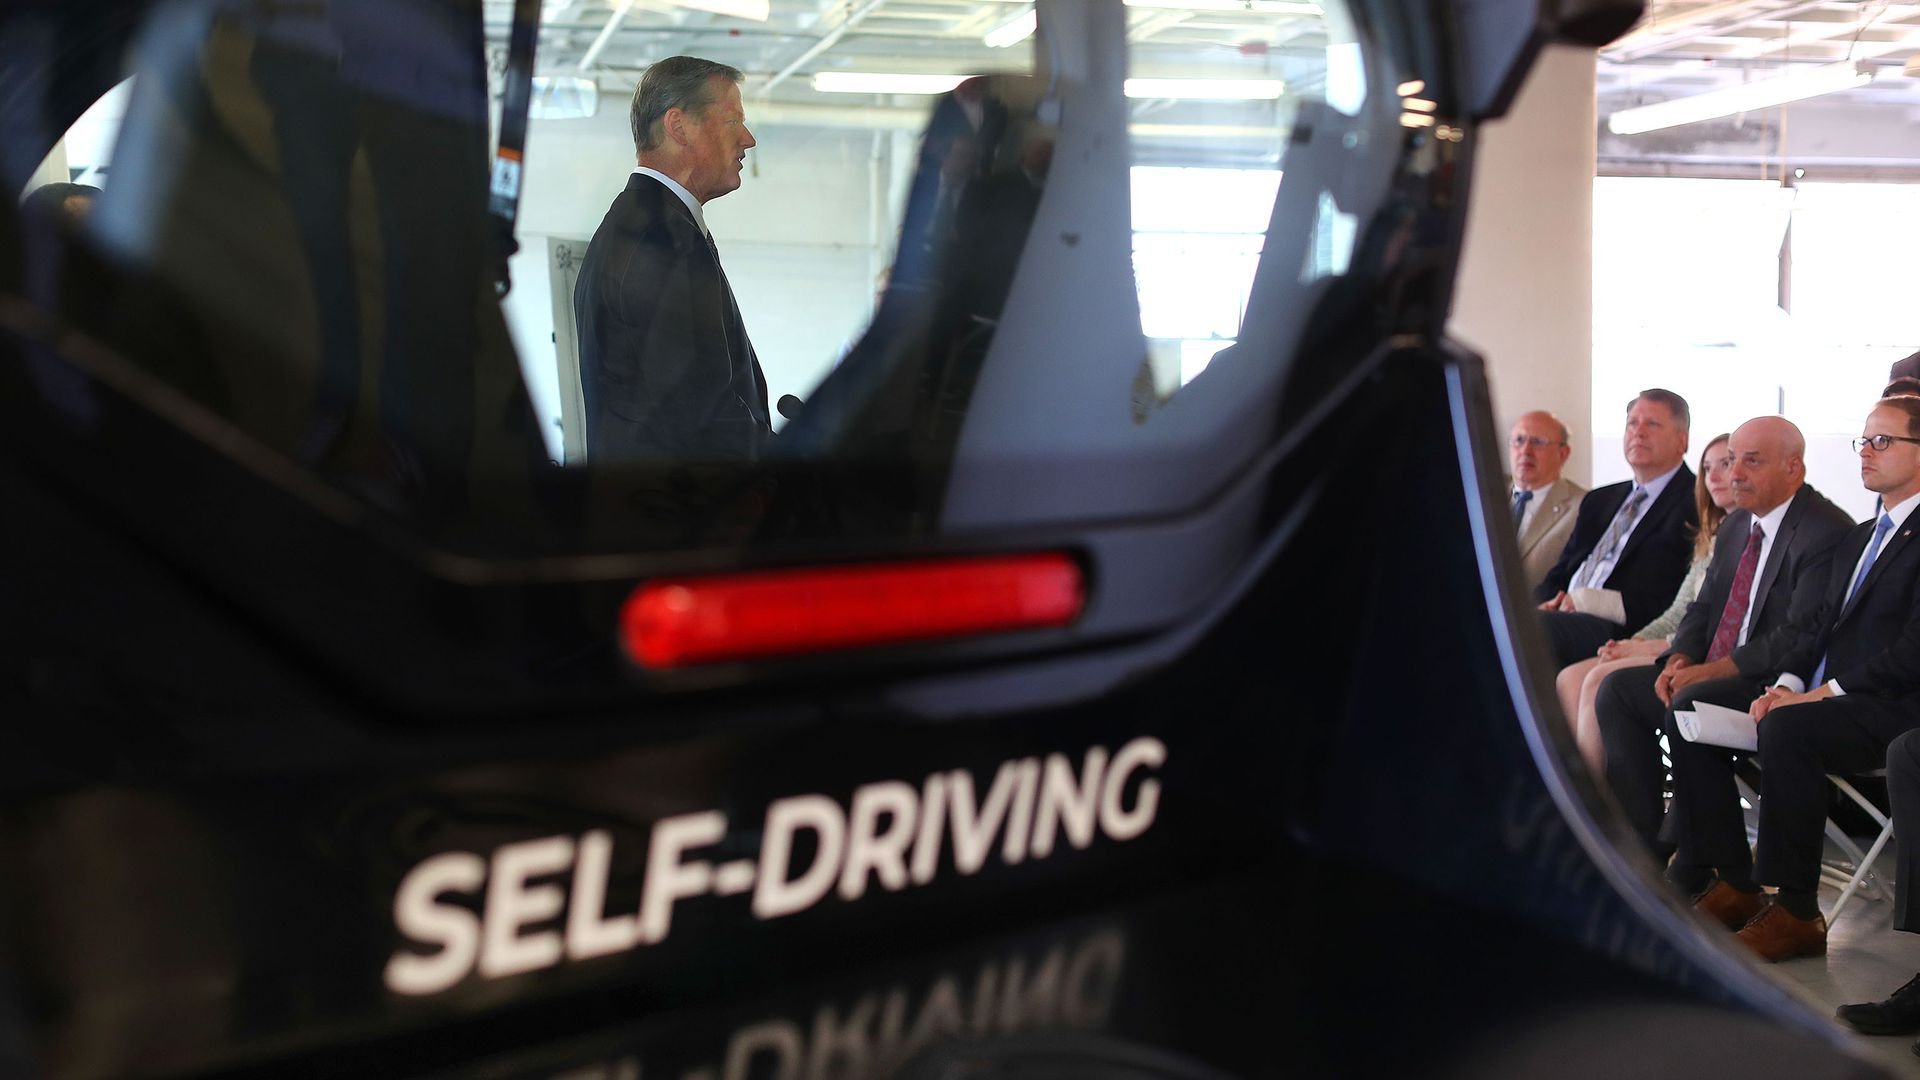 "In this image, the words ""self-driving"" are seen on the back of a black car."